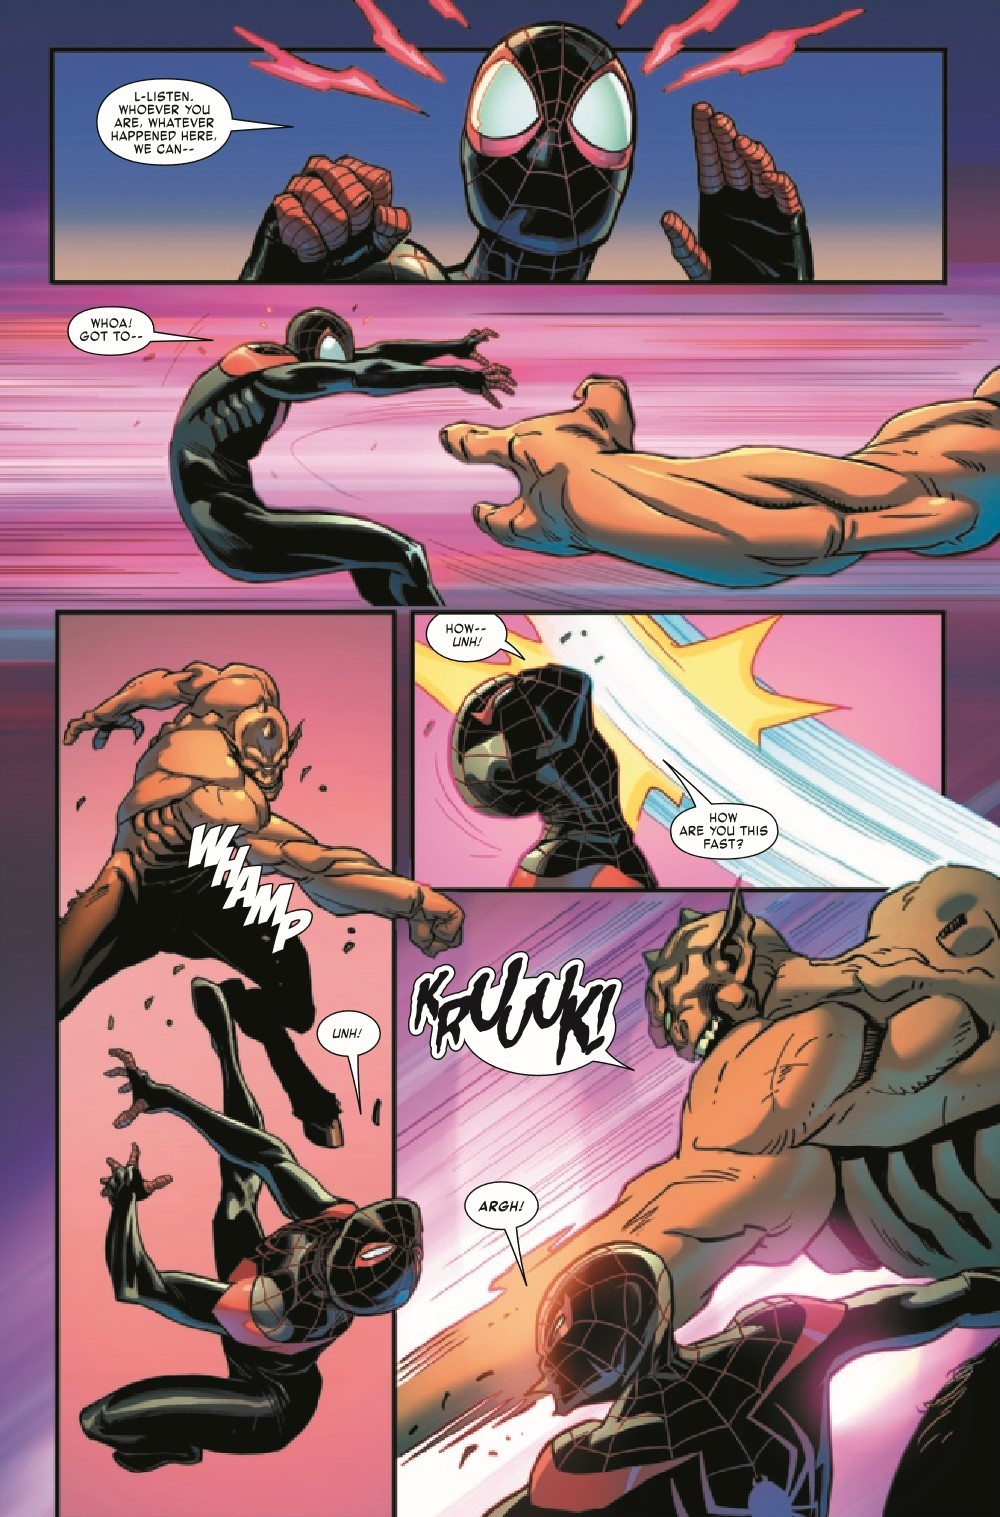 MMSMANN2021001_Preview-6 ComicList Previews: MILES MORALES SPIDER-MAN ANNUAL #1